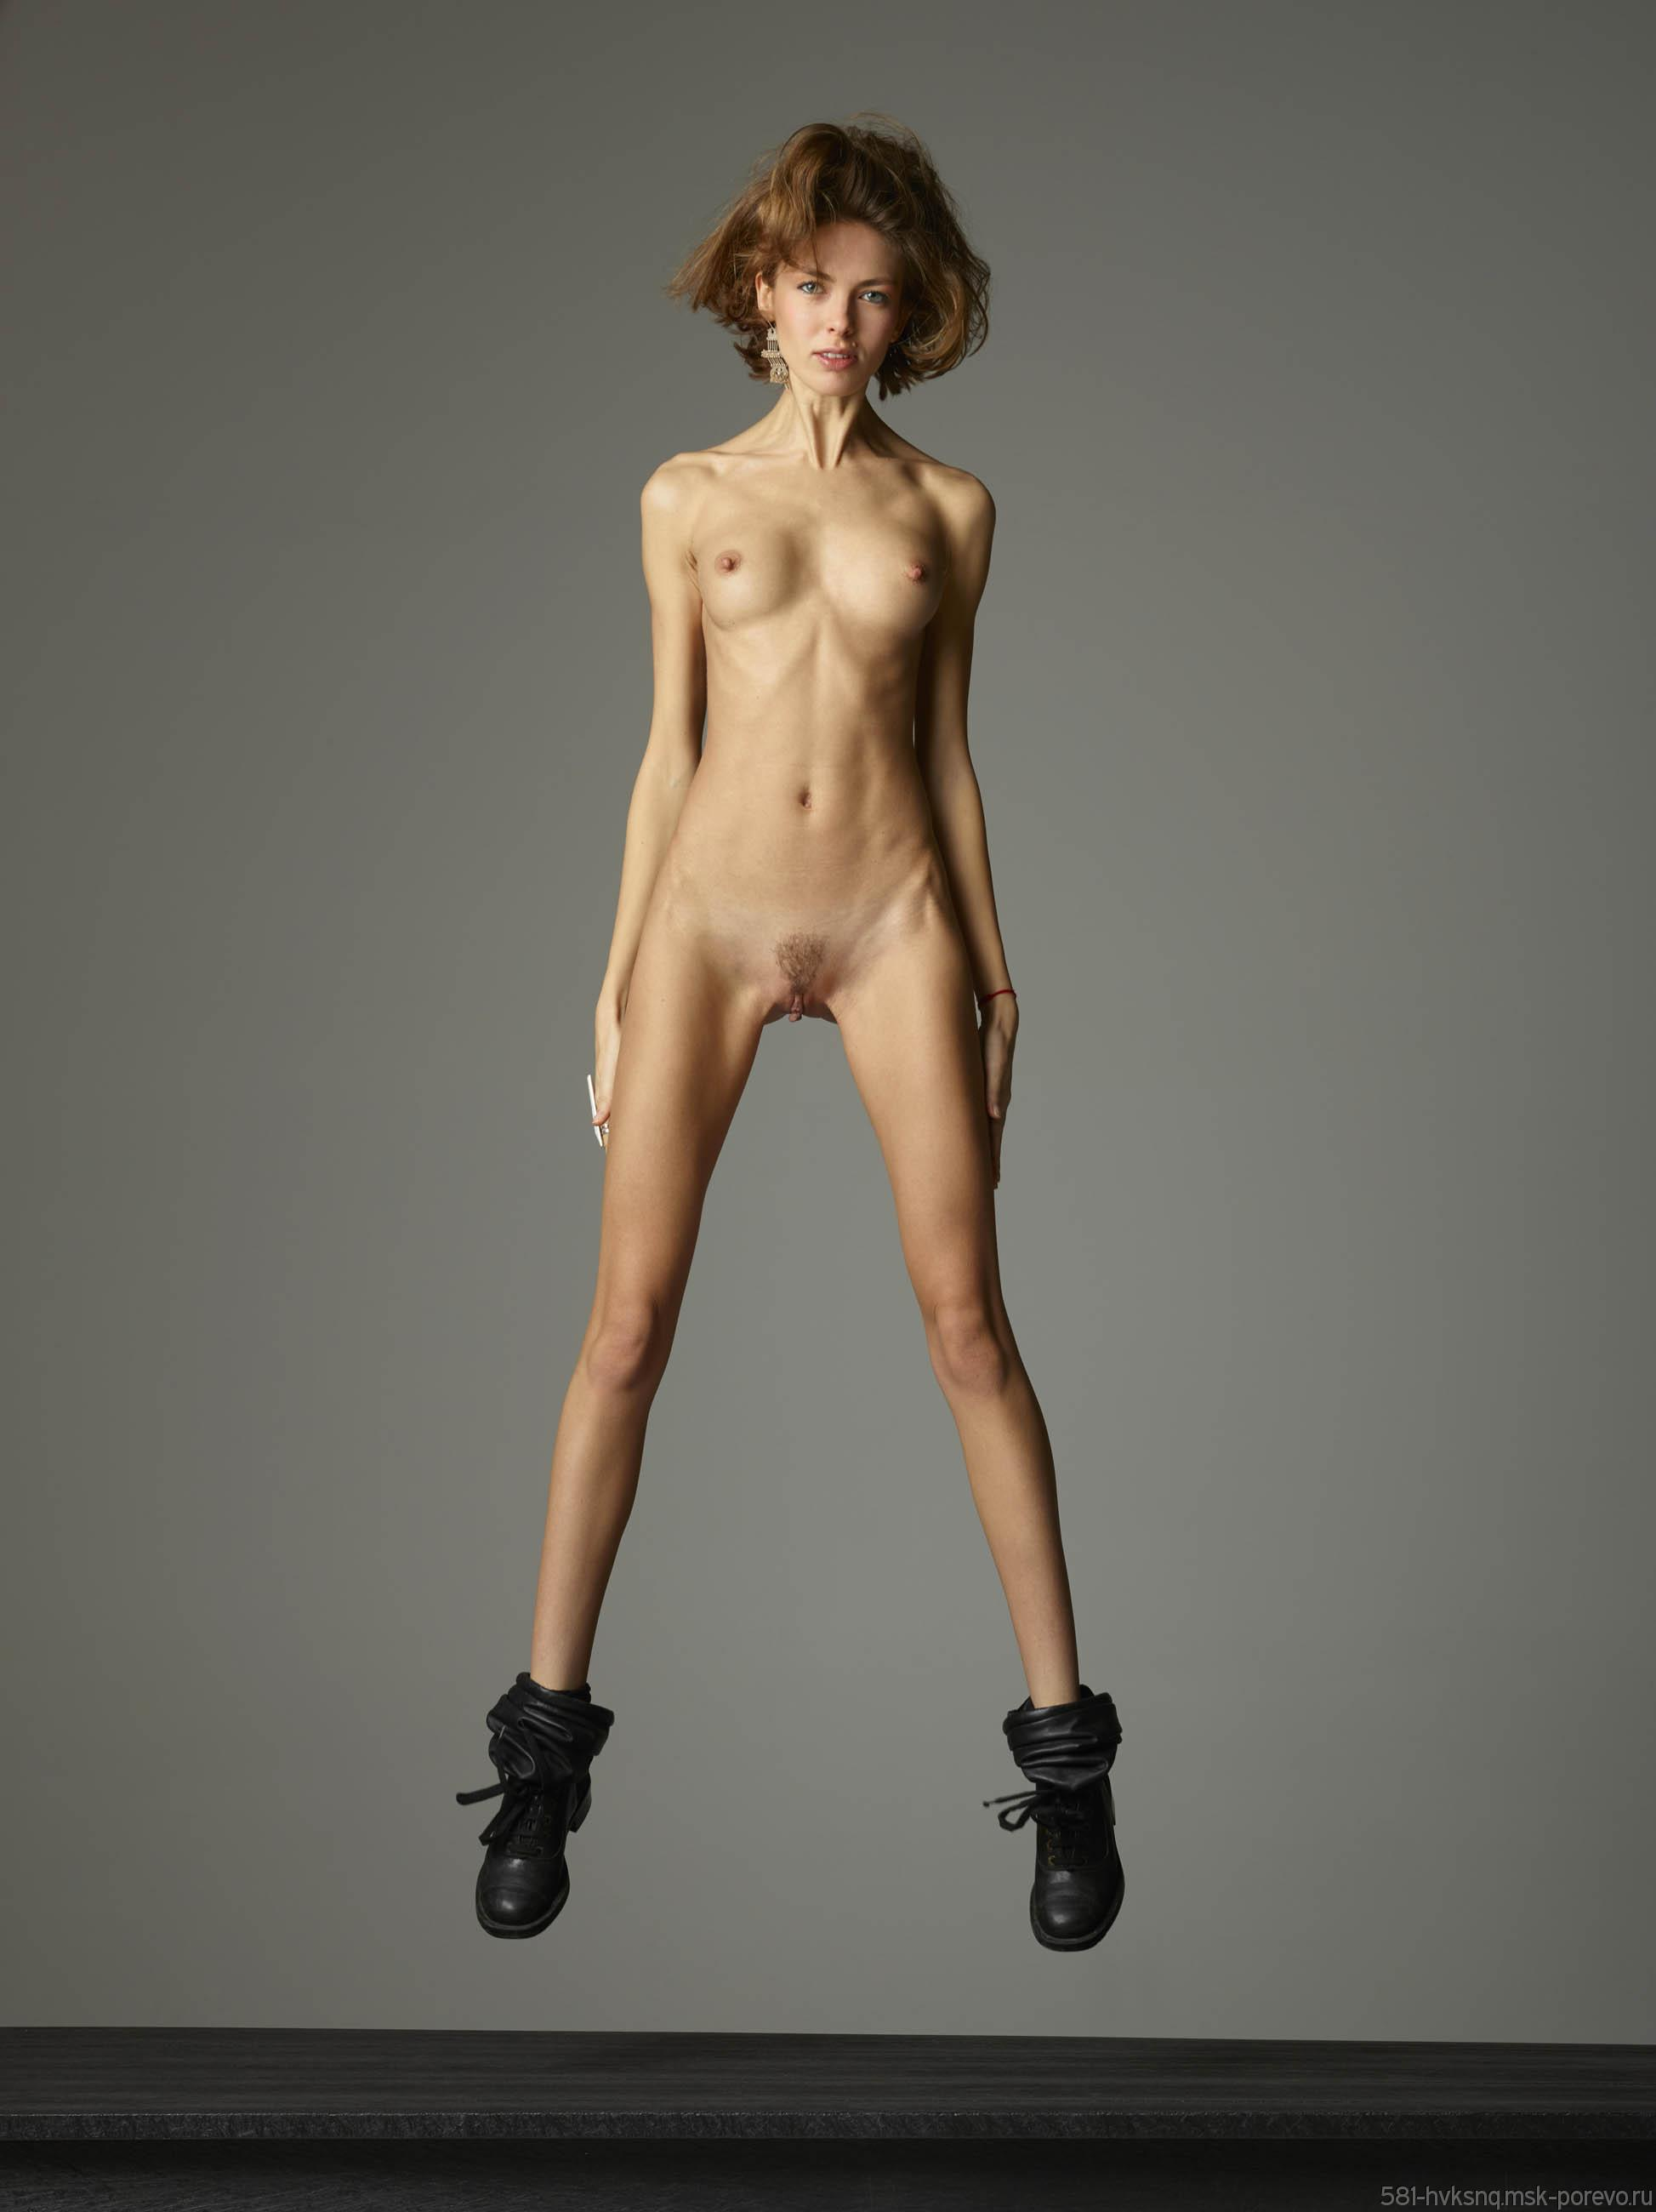 Skinny spanish chick nude, pakistanifick photo